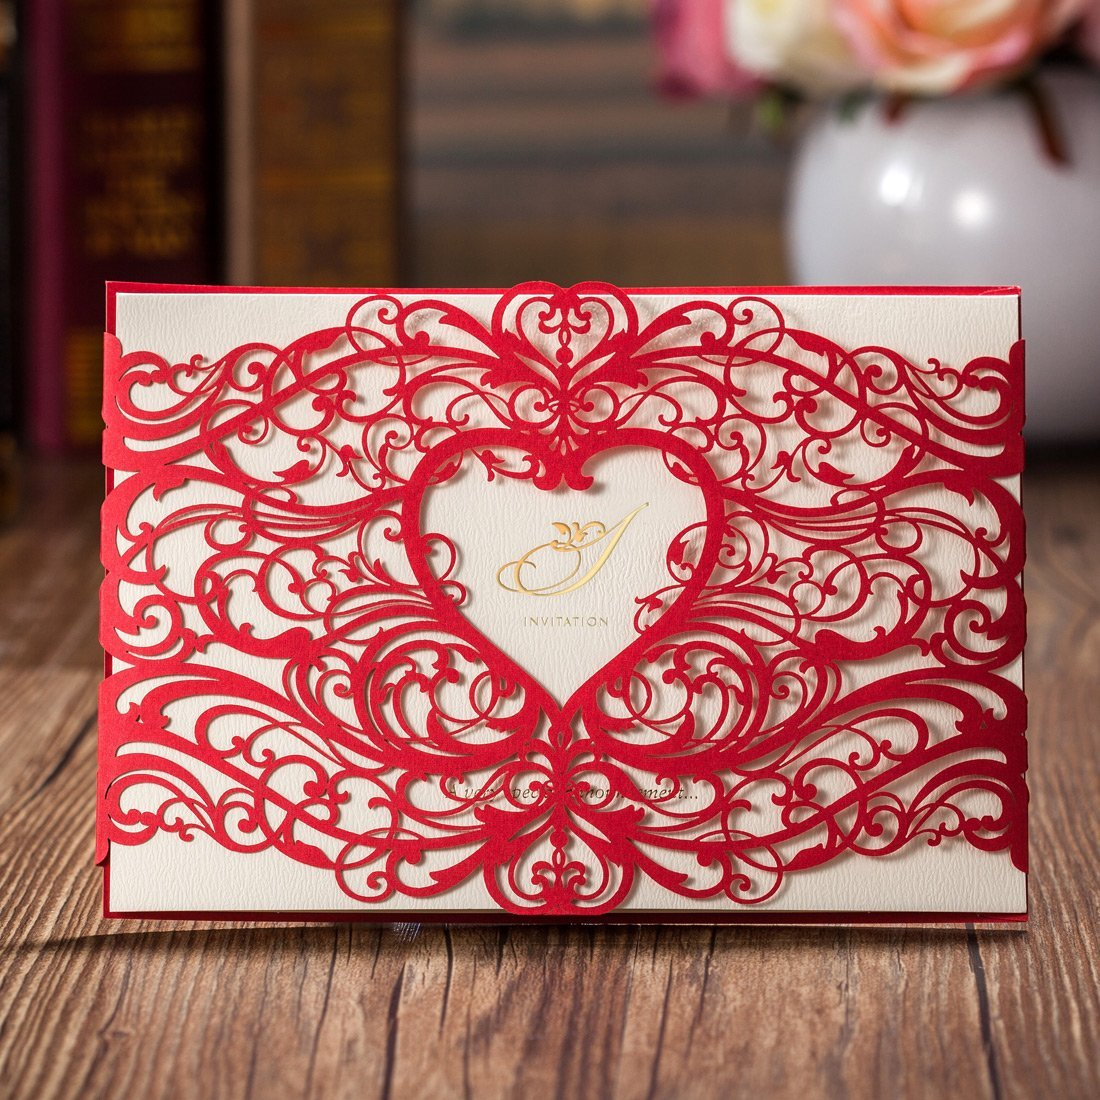 Amazon.com: WISHMADE Laser Cut Invitations Cards Sets 50 Pieces for ...